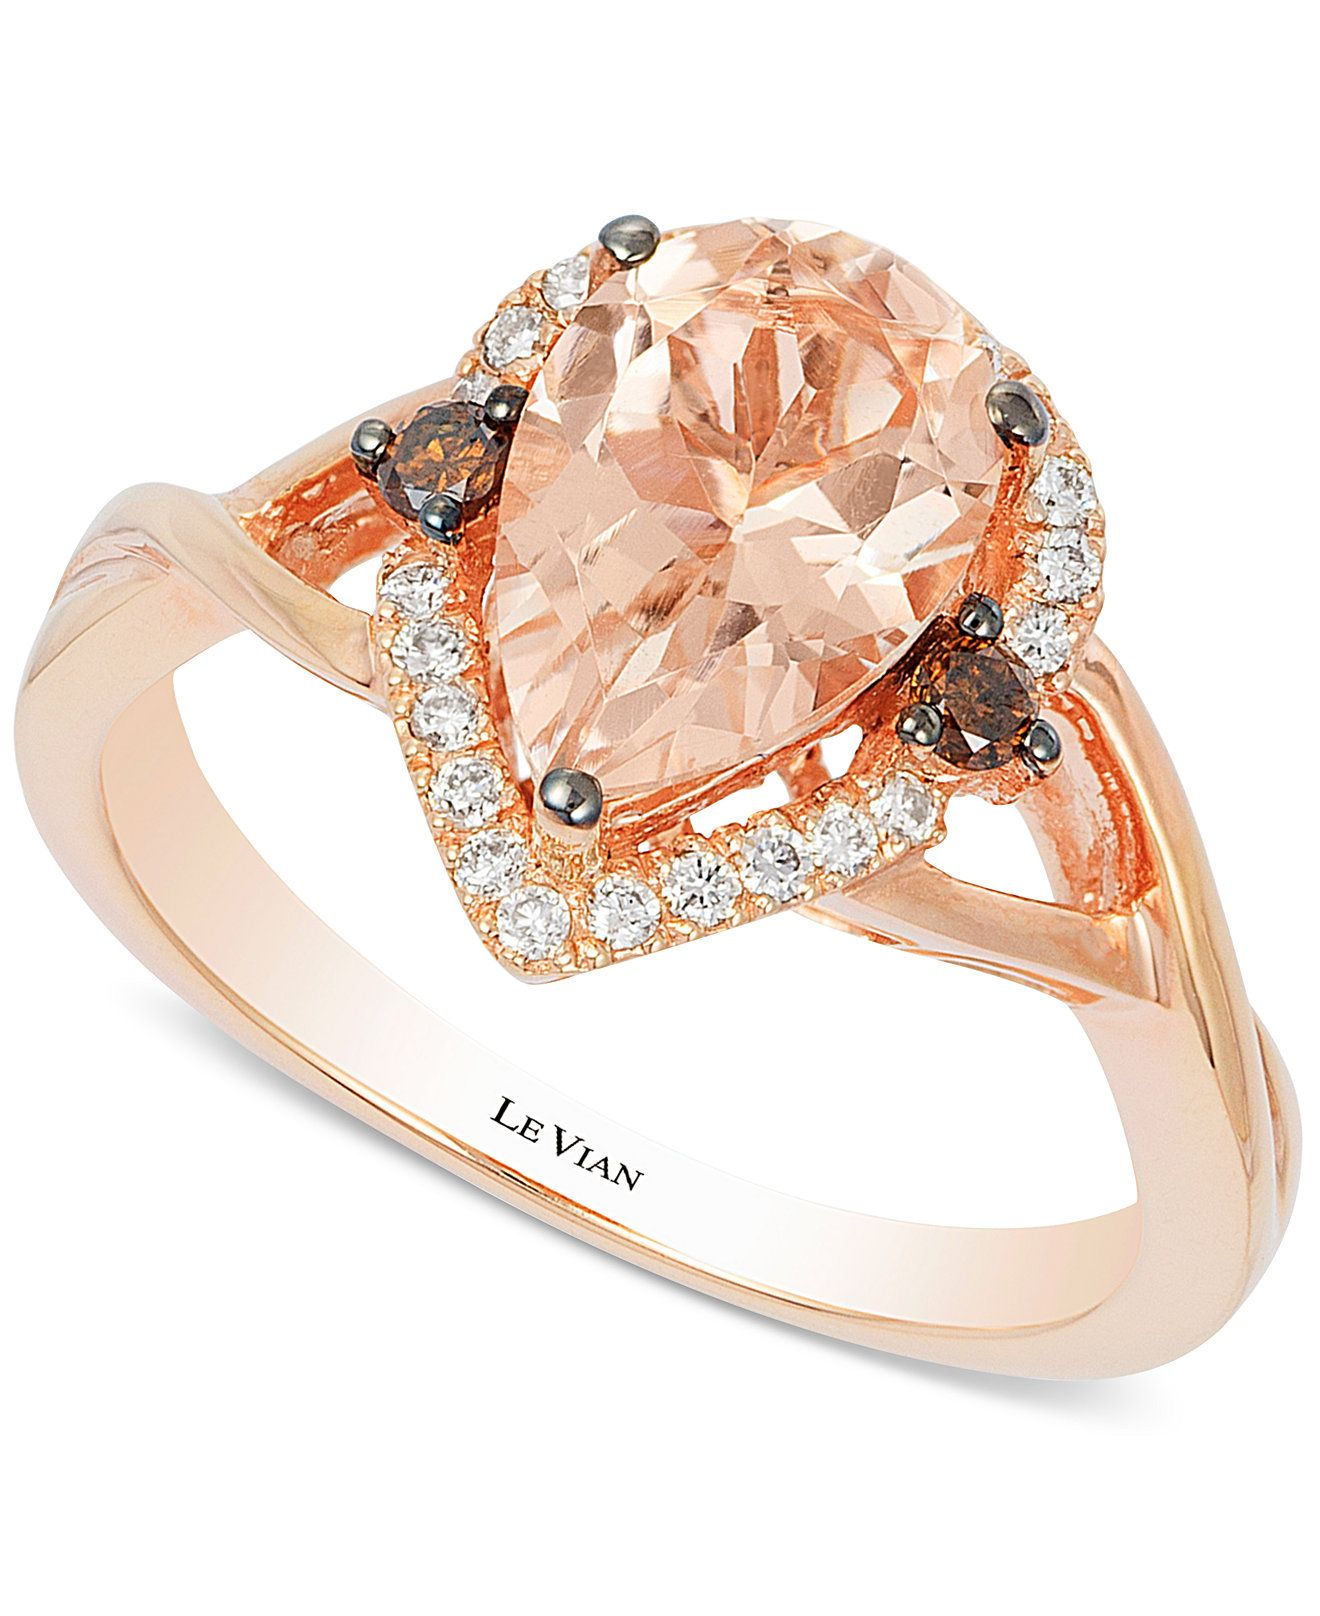 by wedding fashion diamond chocolate thumb petite vian le shop rings rose product gold